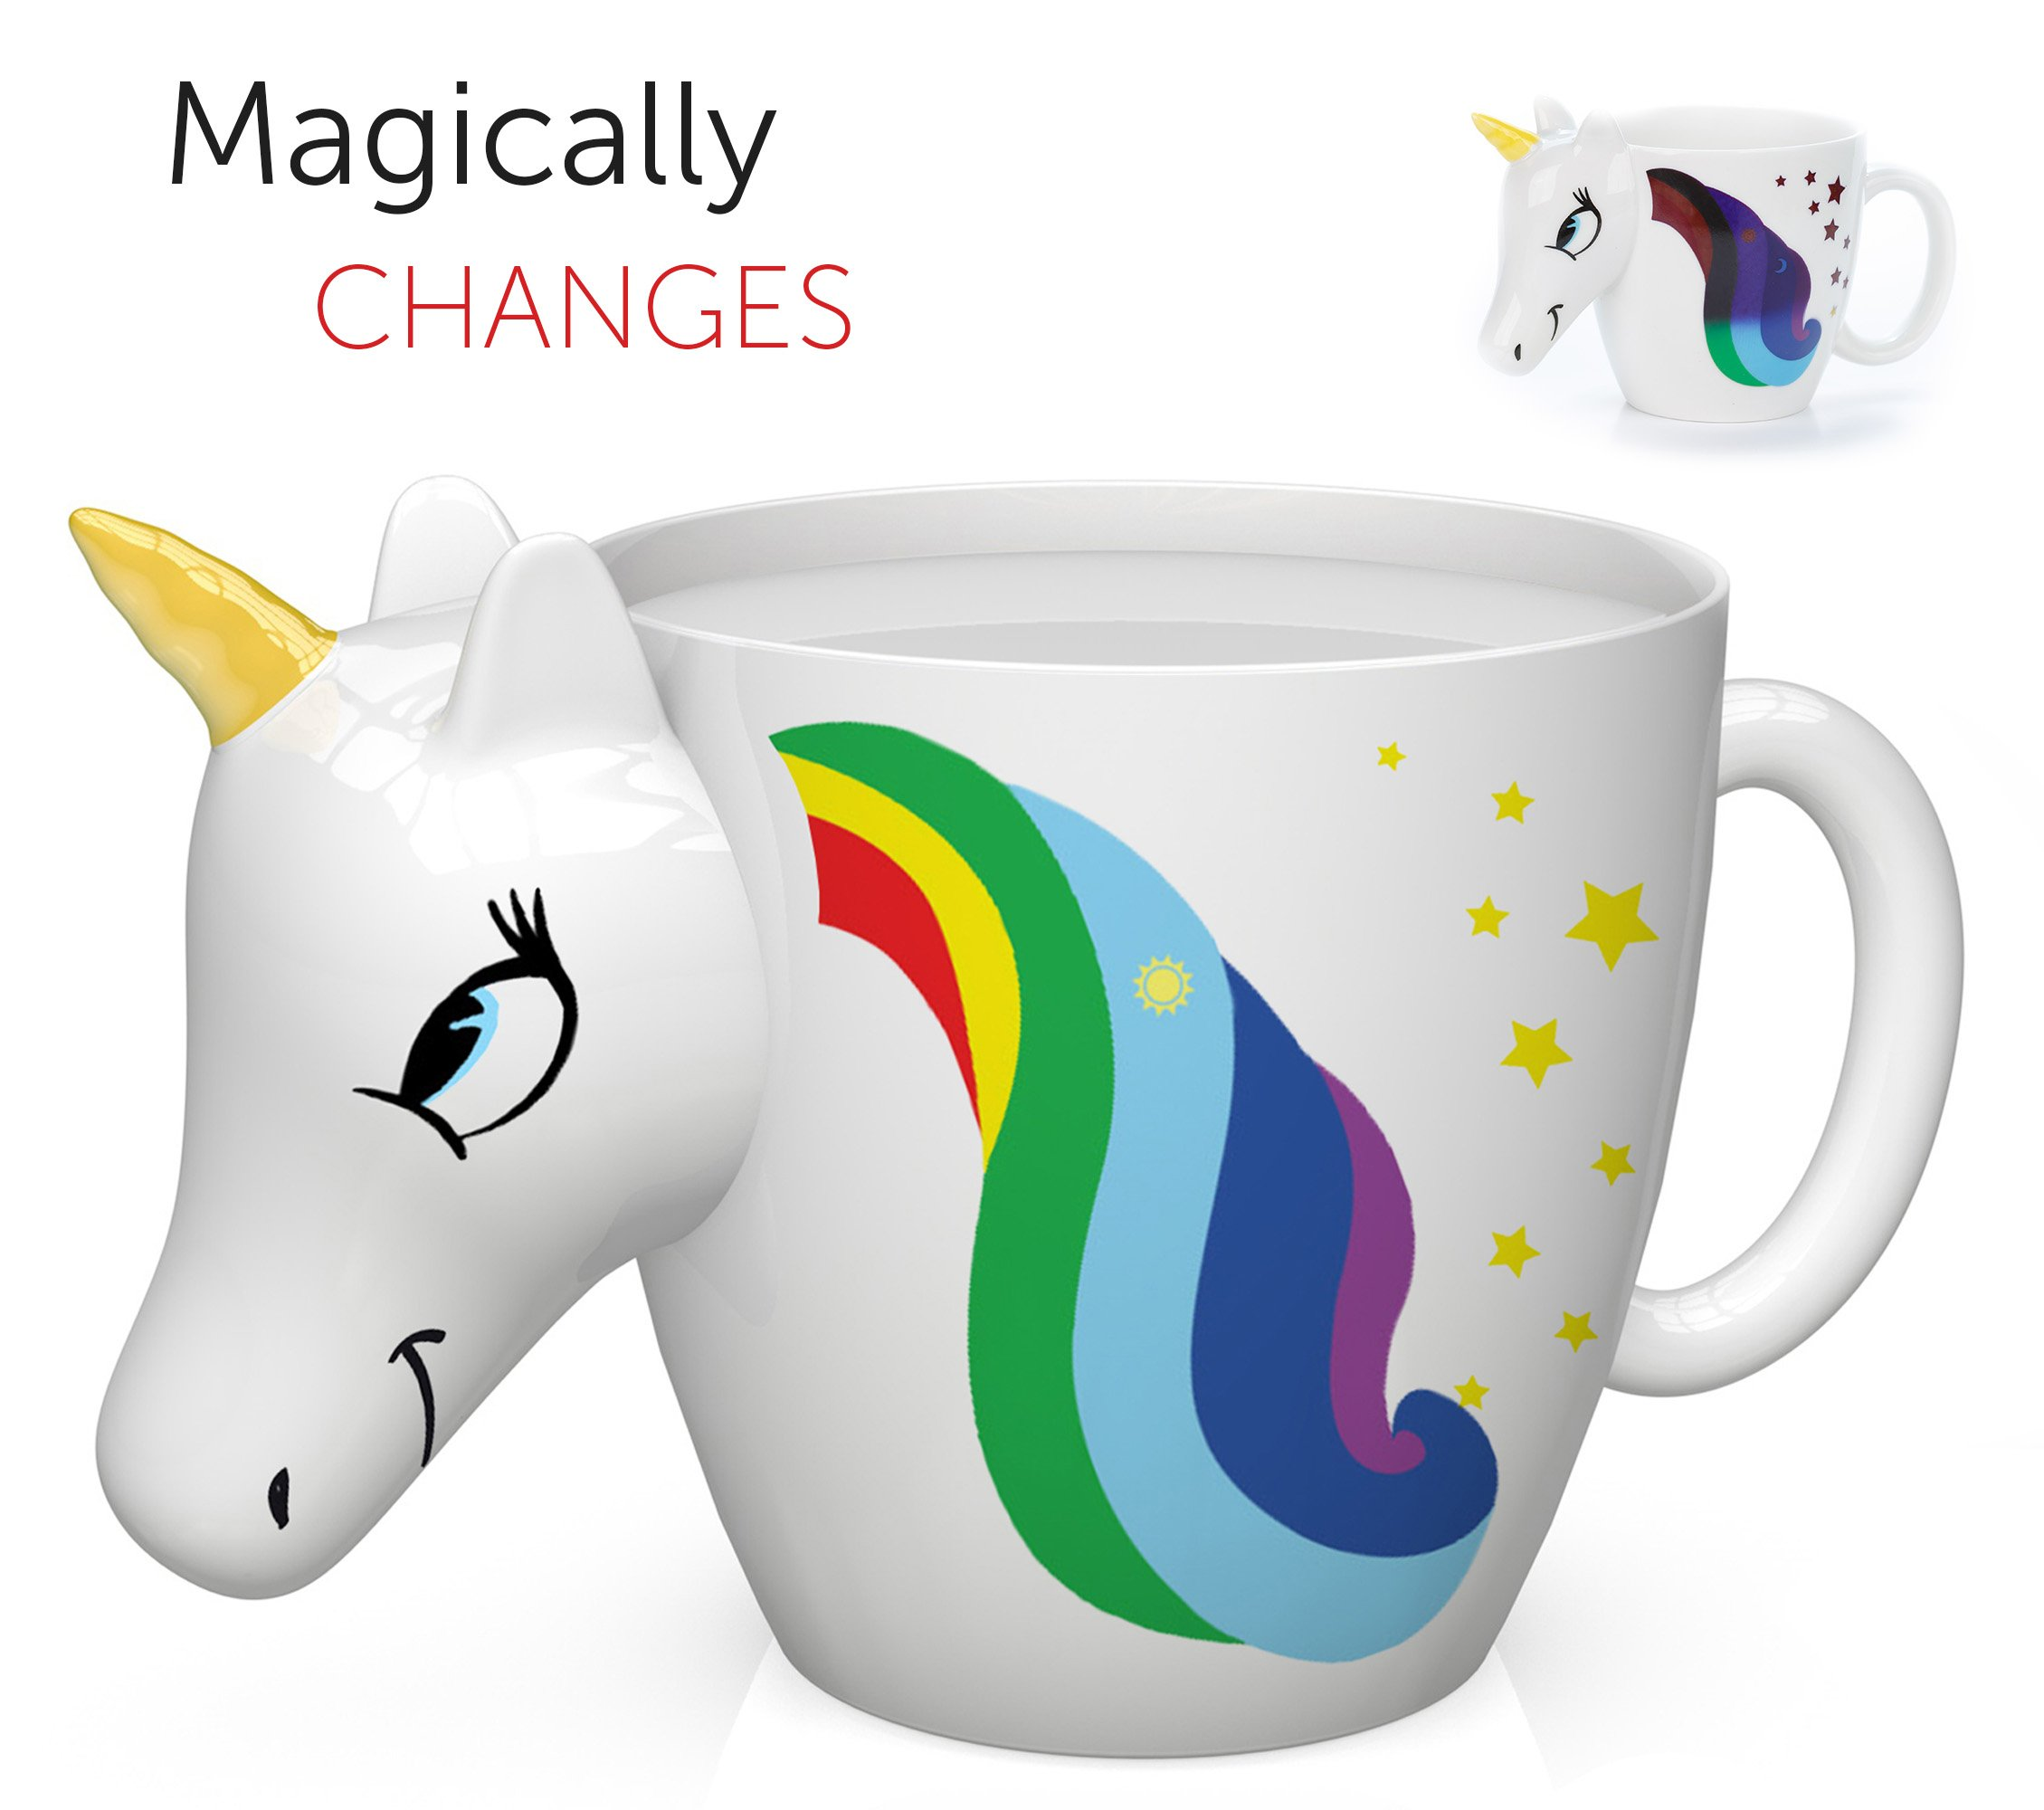 Unicorn Mug - 3D Color Changing Coffee Mugs 2018 Design, Your morning cup of coffee or tea will never be the same! Our ceramic mugs will start your day with a magic rainbow. Great Unicorns Gifts!